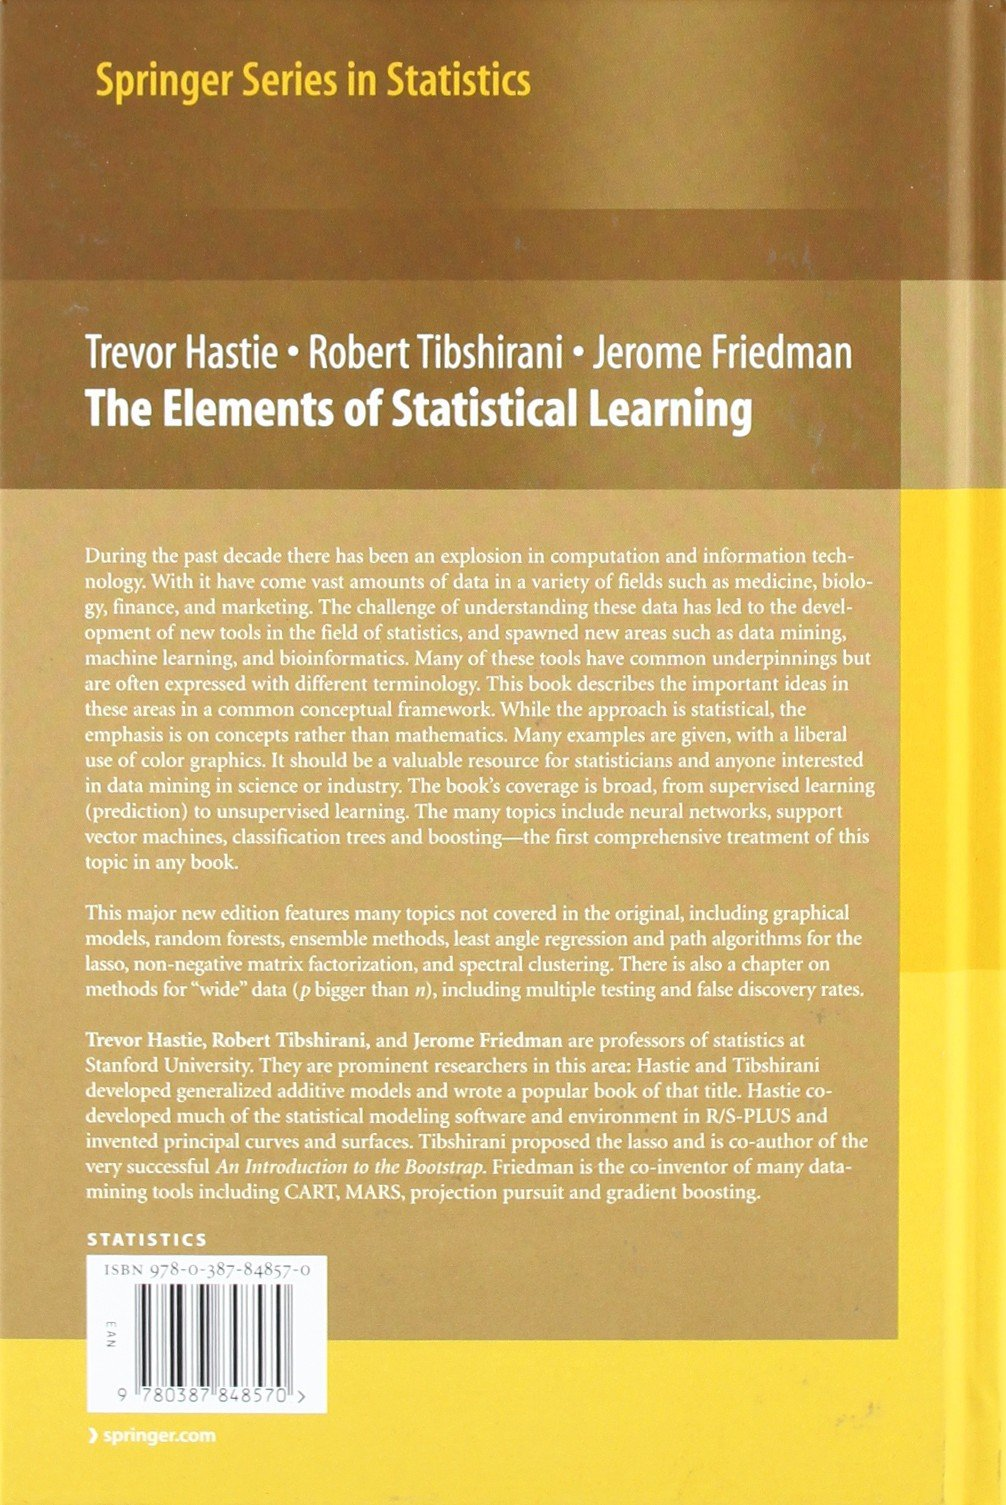 The Elements of Statistical Learning: Data Mining, Inference, and Prediction, Second Edition (Springer Series in Statistics) by Springer